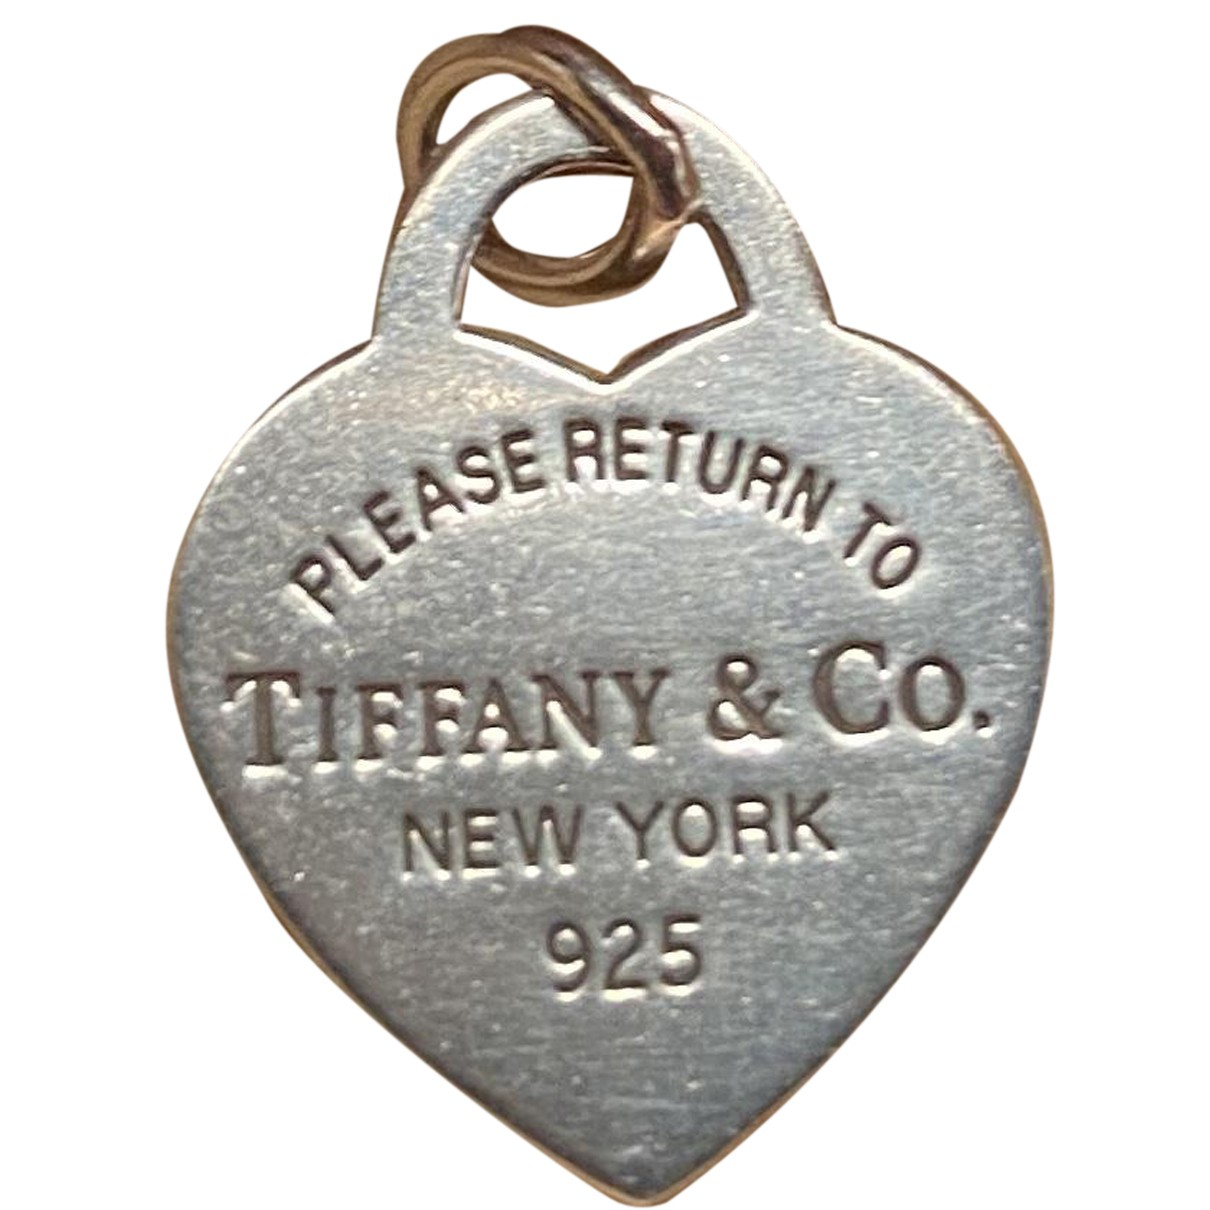 Colgante de Plata Tiffany & Co